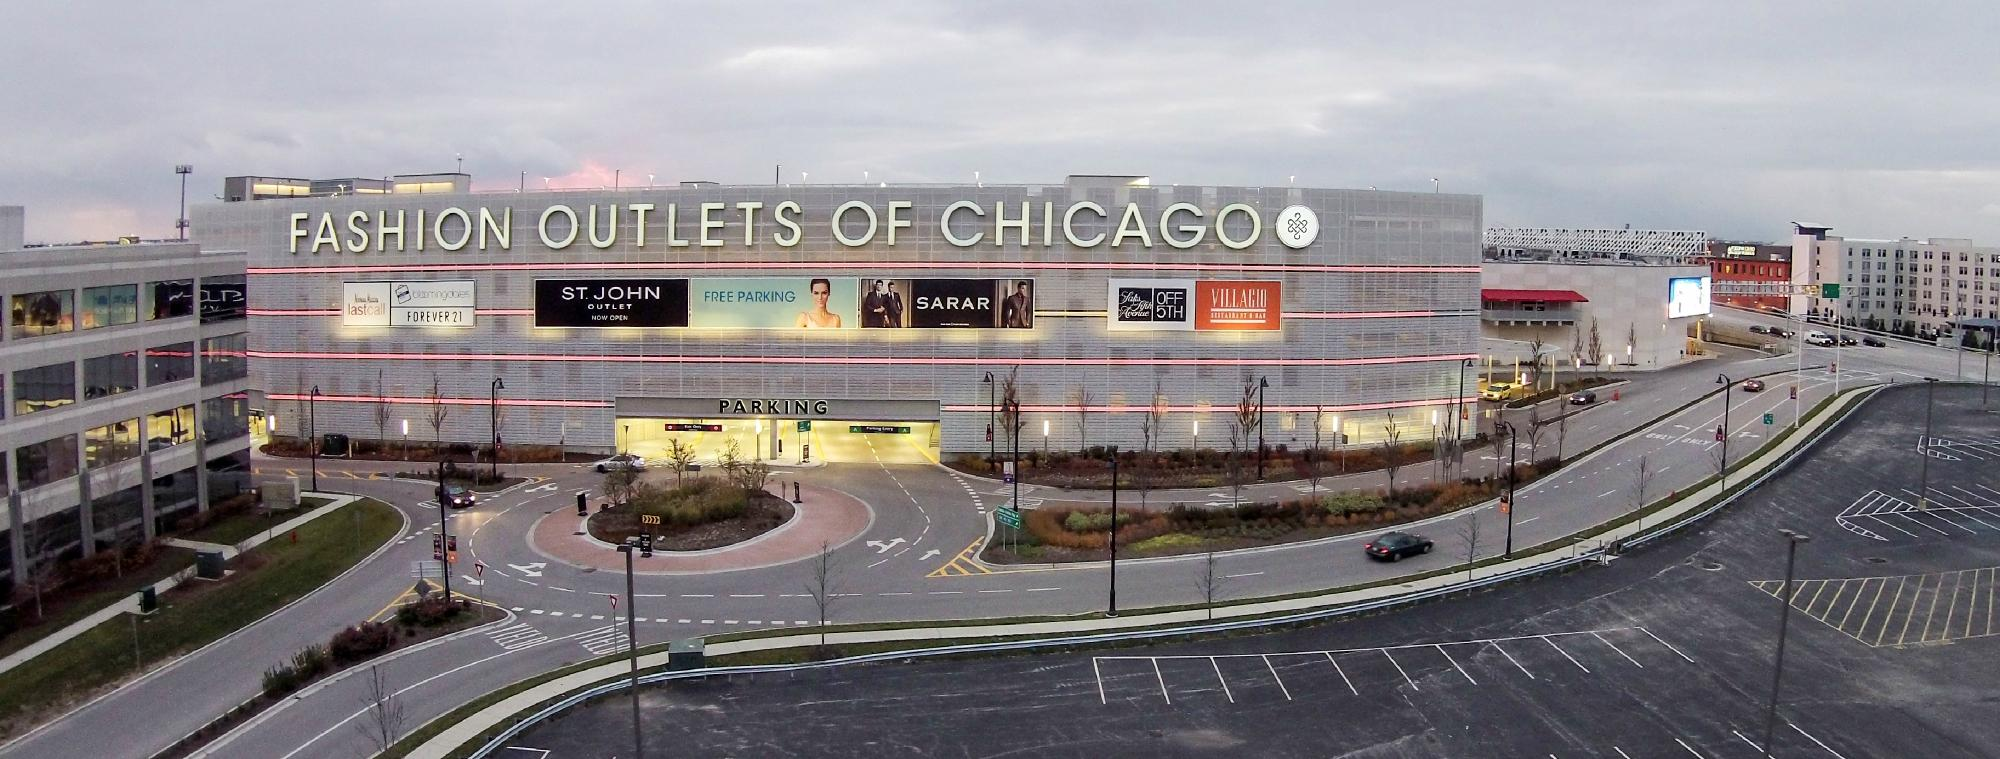 Fashion Outlets Of Chicago Rosemont 2018 All You Need To Know Before Go With Photos Tripadvisor